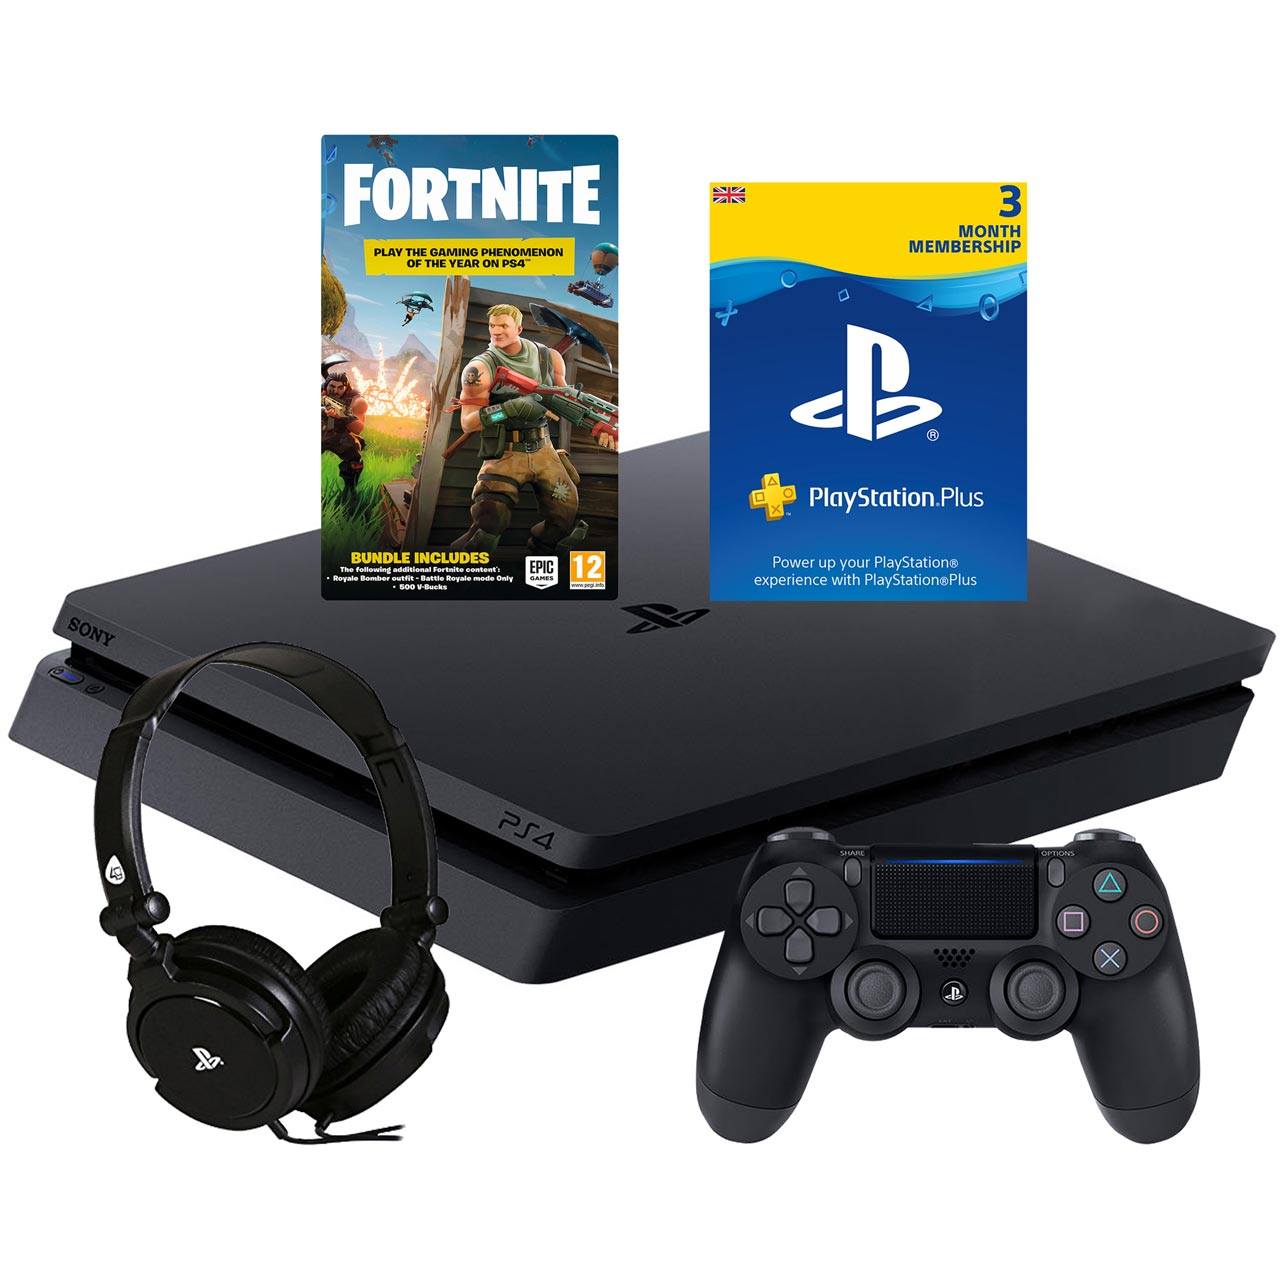 Playstation Contact Sony Playstation P4headcst54809 Ps4 Fortnite Bundle 43 Ps